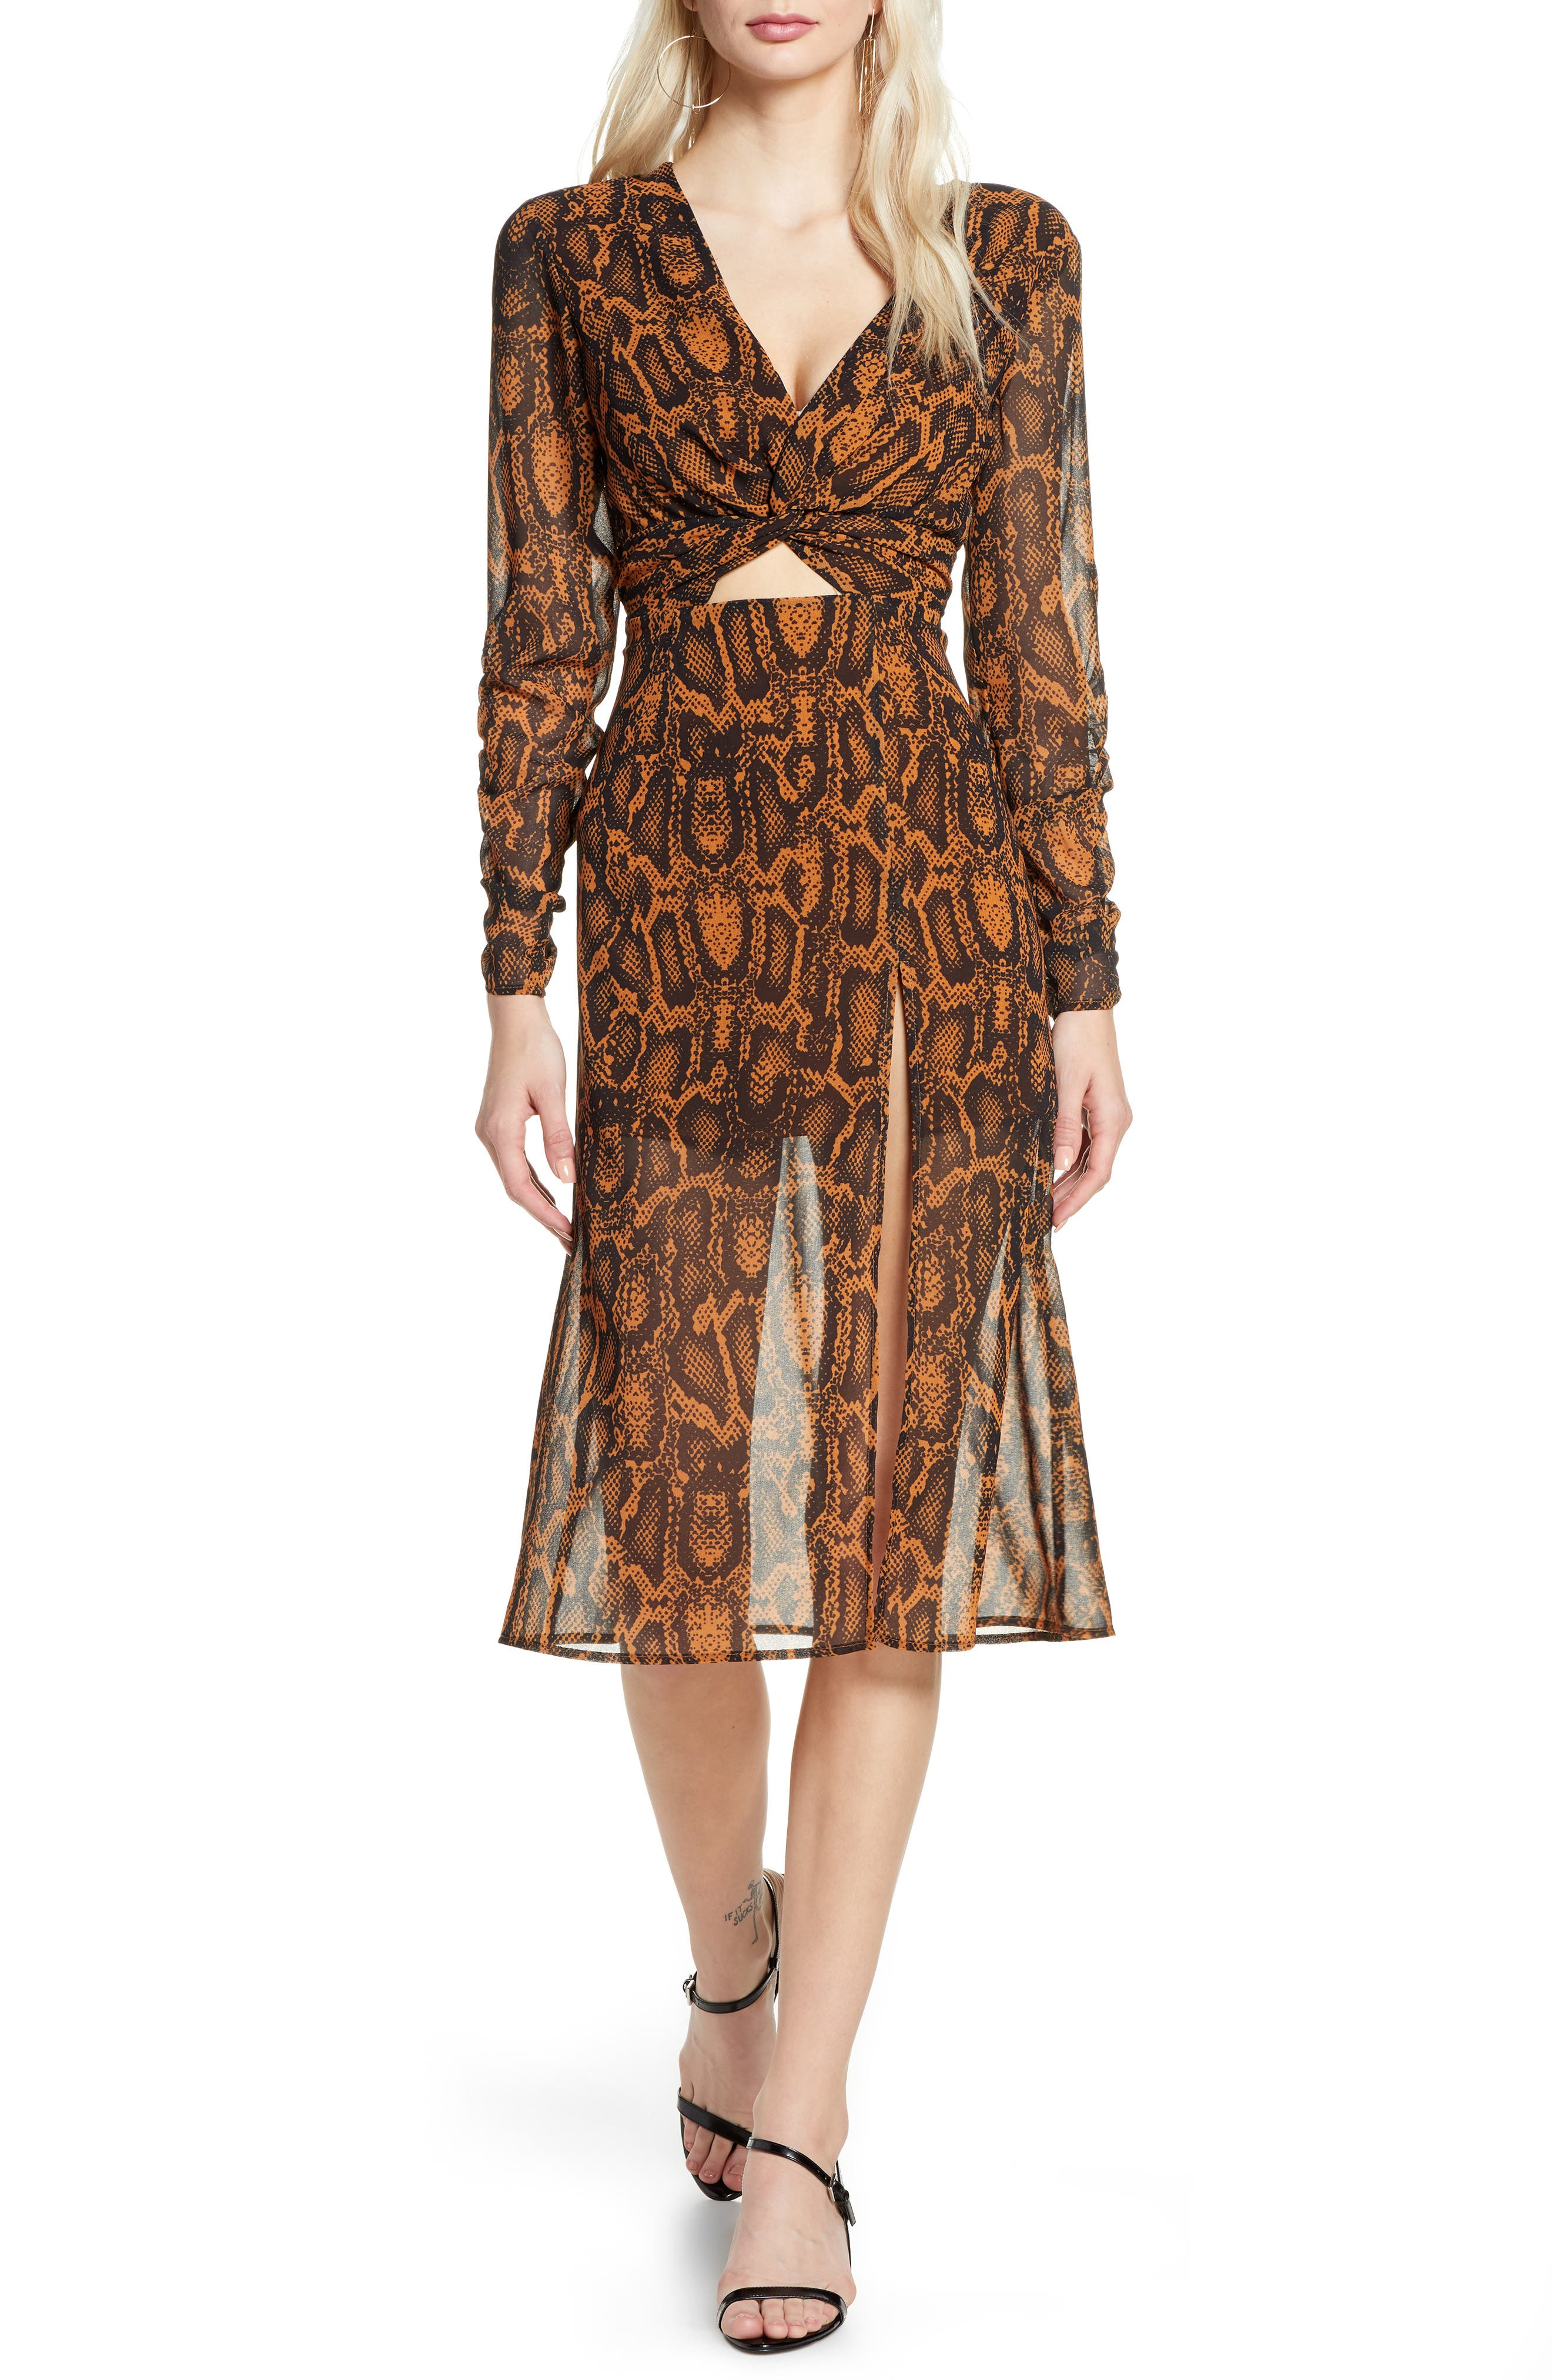 Finders Keepers Womens Lana Snake Print Ruched Party Mini Dress BHFO 7660